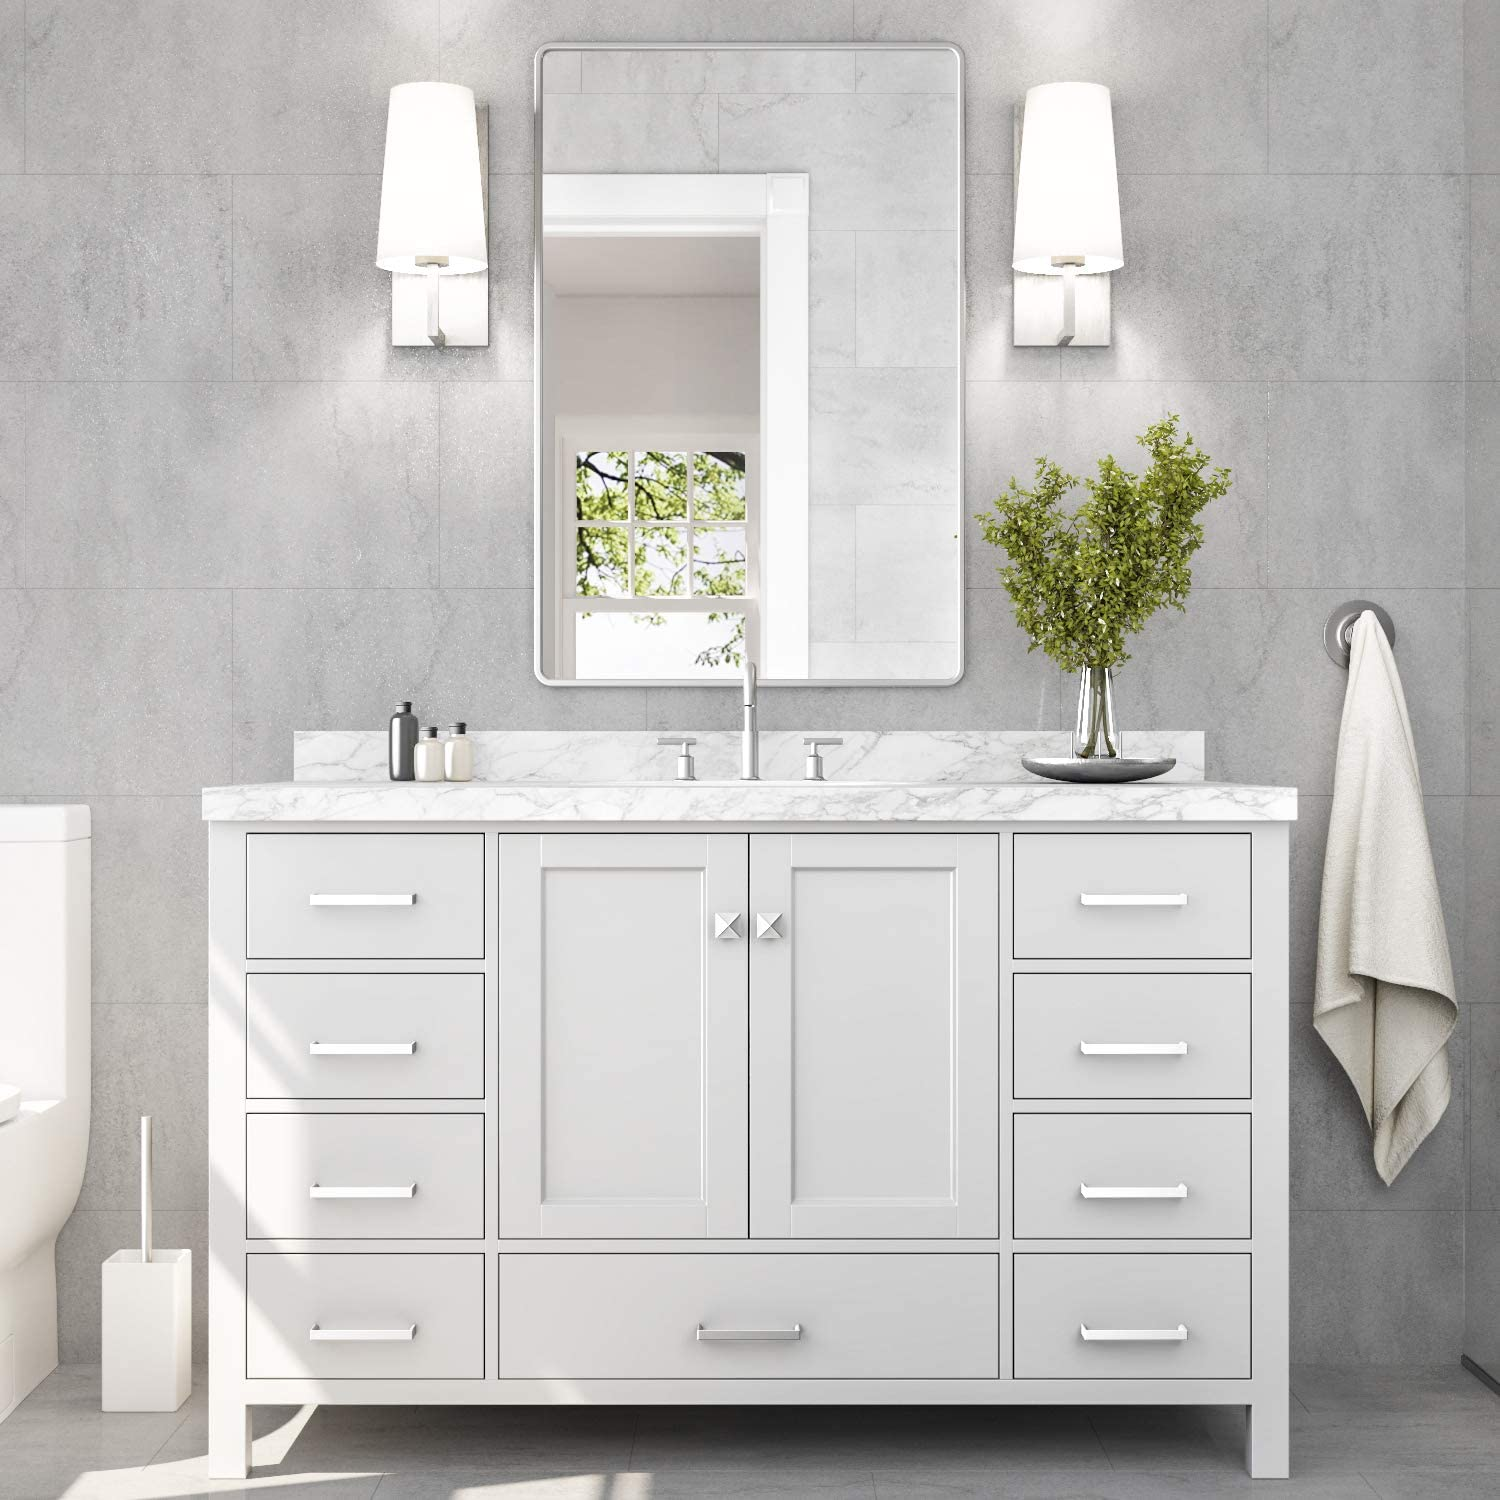 Amazon Com Ariel Bathroom Vanity 55 Inch With Carrara White Marble Countertop And Oval Sink In White 2 Soft Closing Doors 9 Full Extension Dovetail Drawers With Backsplash No Mirror Kitchen Dining